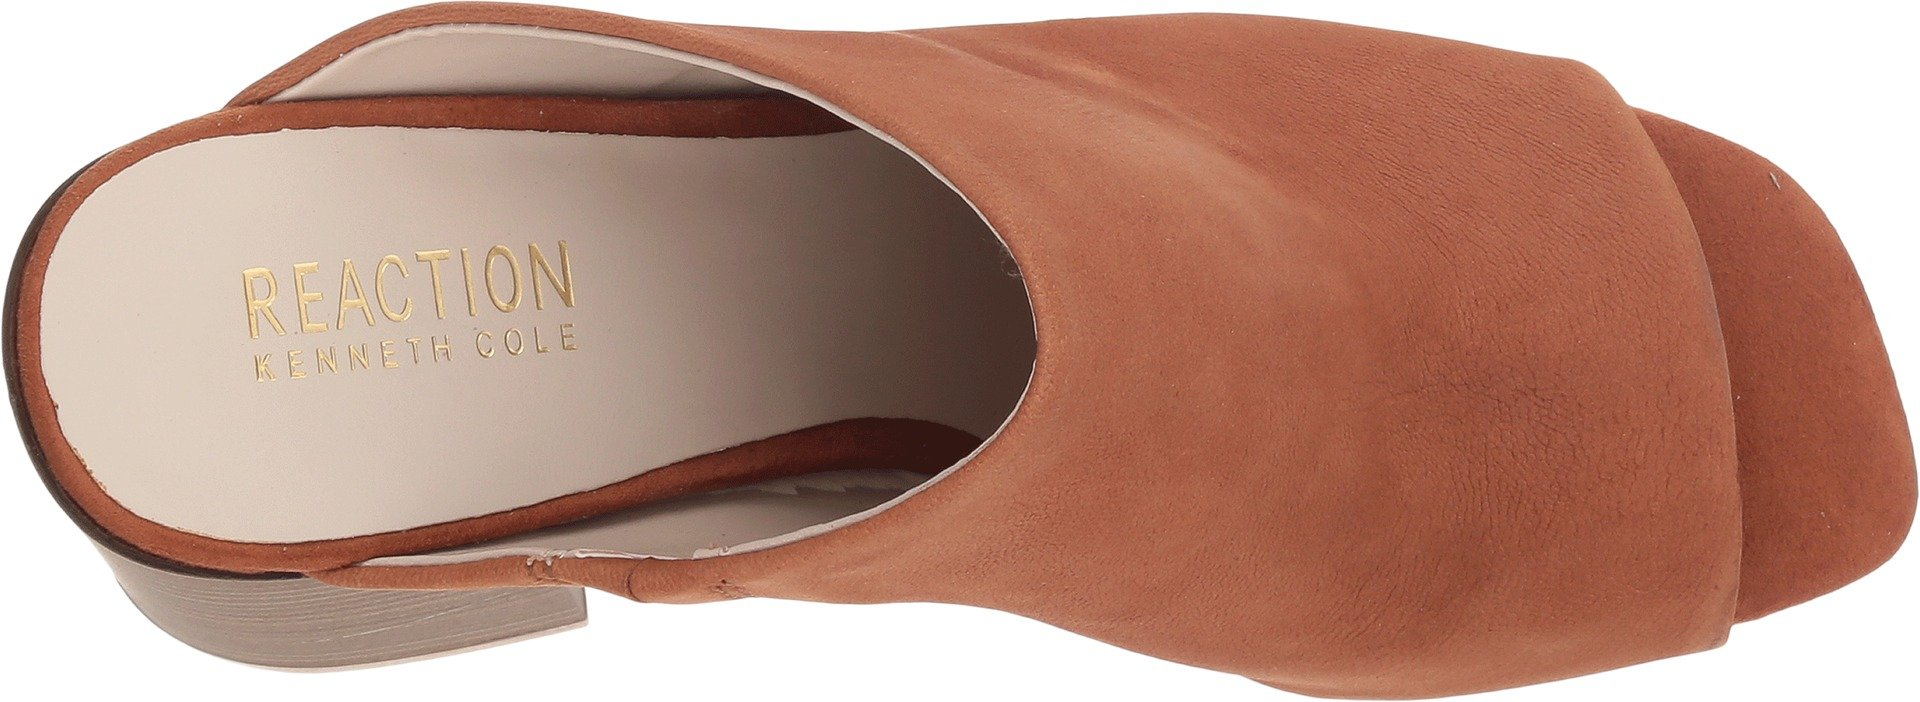 Kenneth Cole REACTION Women's Top Notch Cognac 7.5 M US by Kenneth Cole REACTION (Image #2)